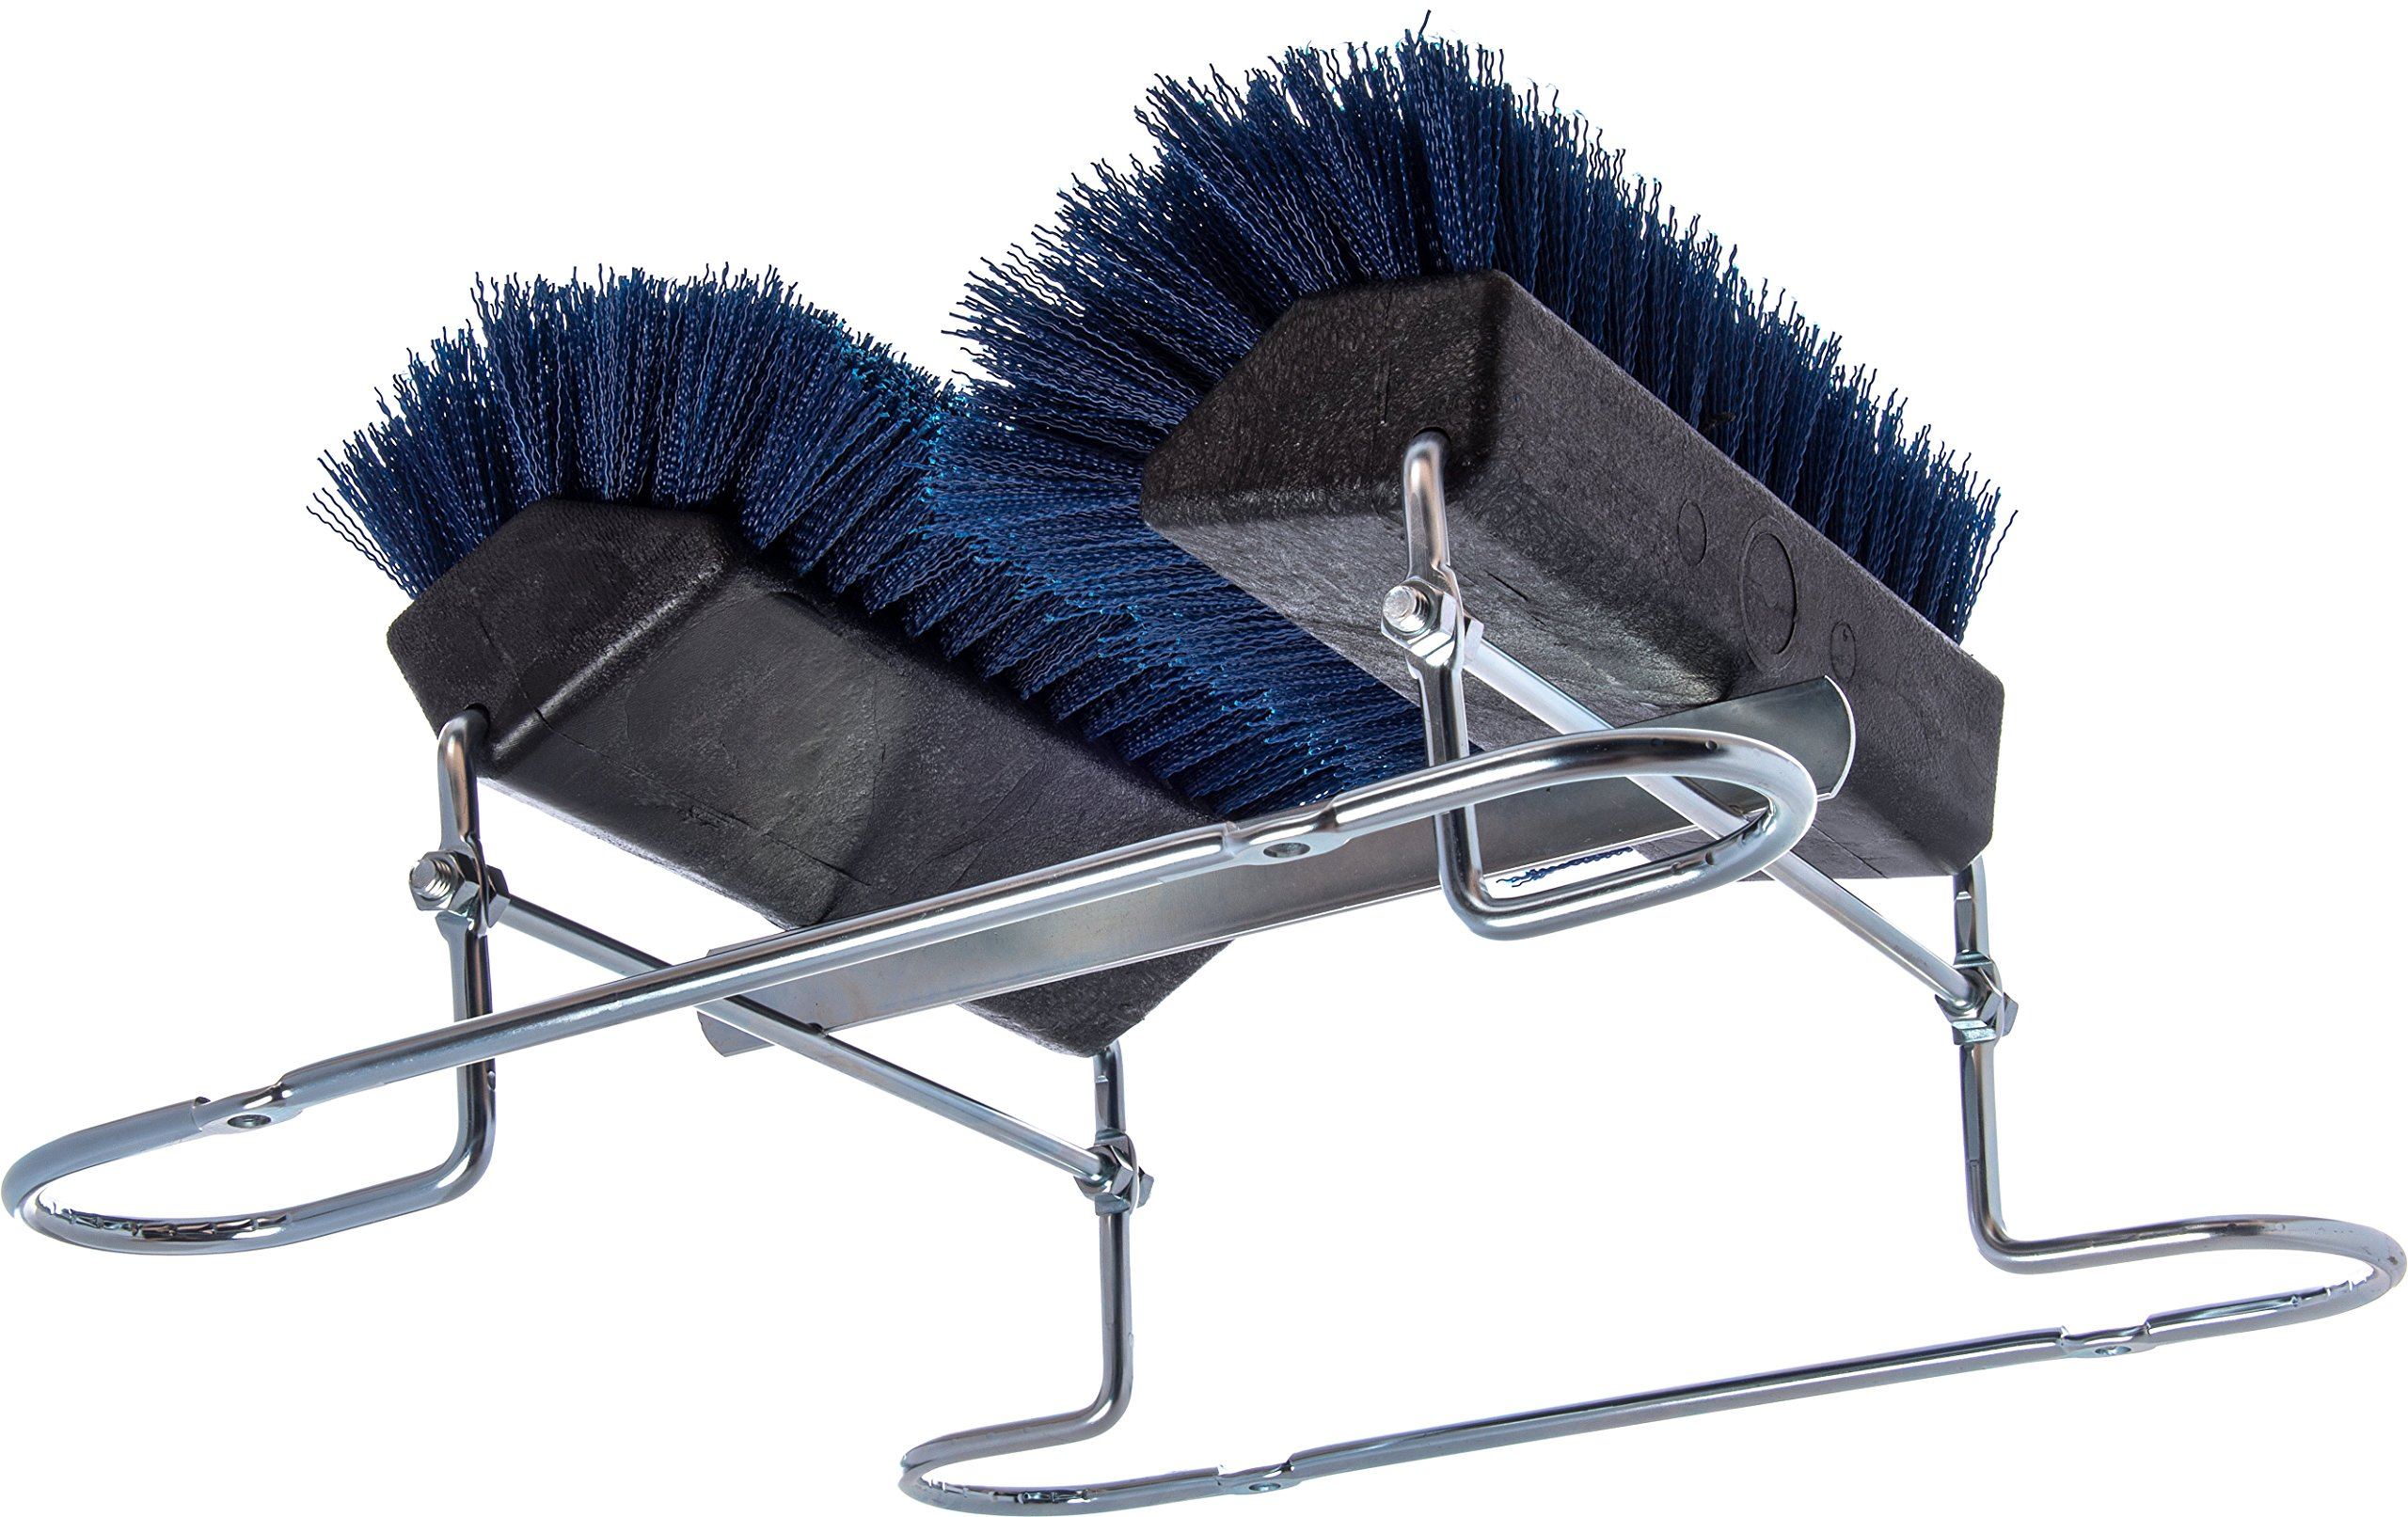 Carlisle 4042414 Commercial Boot 'N Shoe Brush Scraper with Chrome Plated Steel Frame, Blue by Carlisle (Image #4)